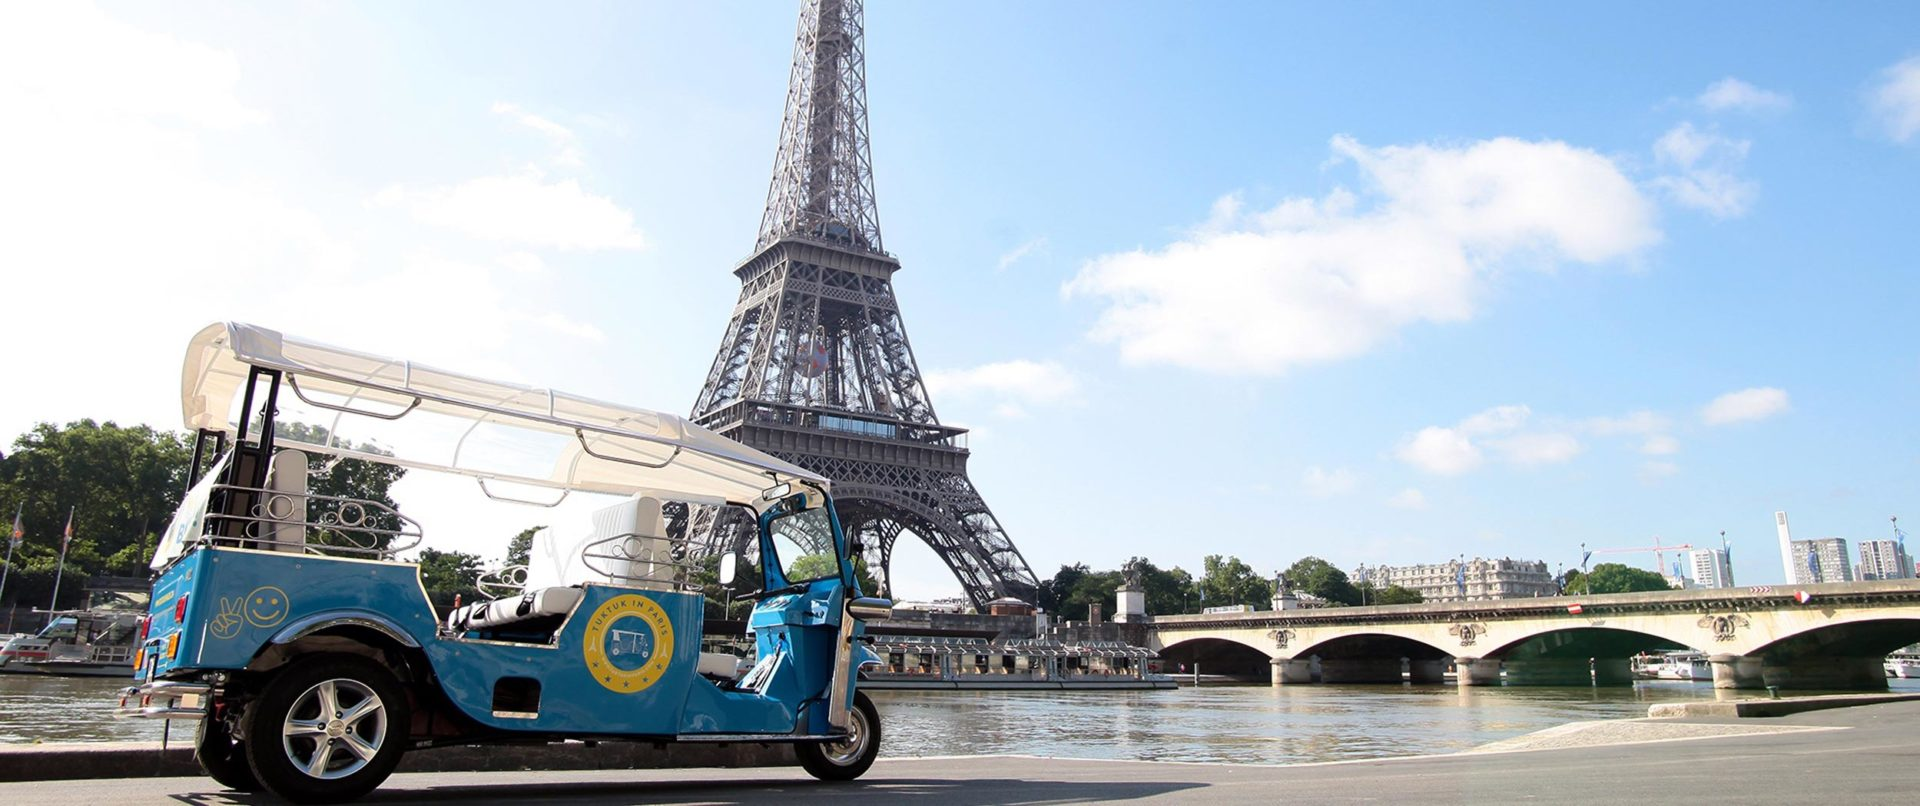 tuk-tuk-paris-sightseeing-invalides